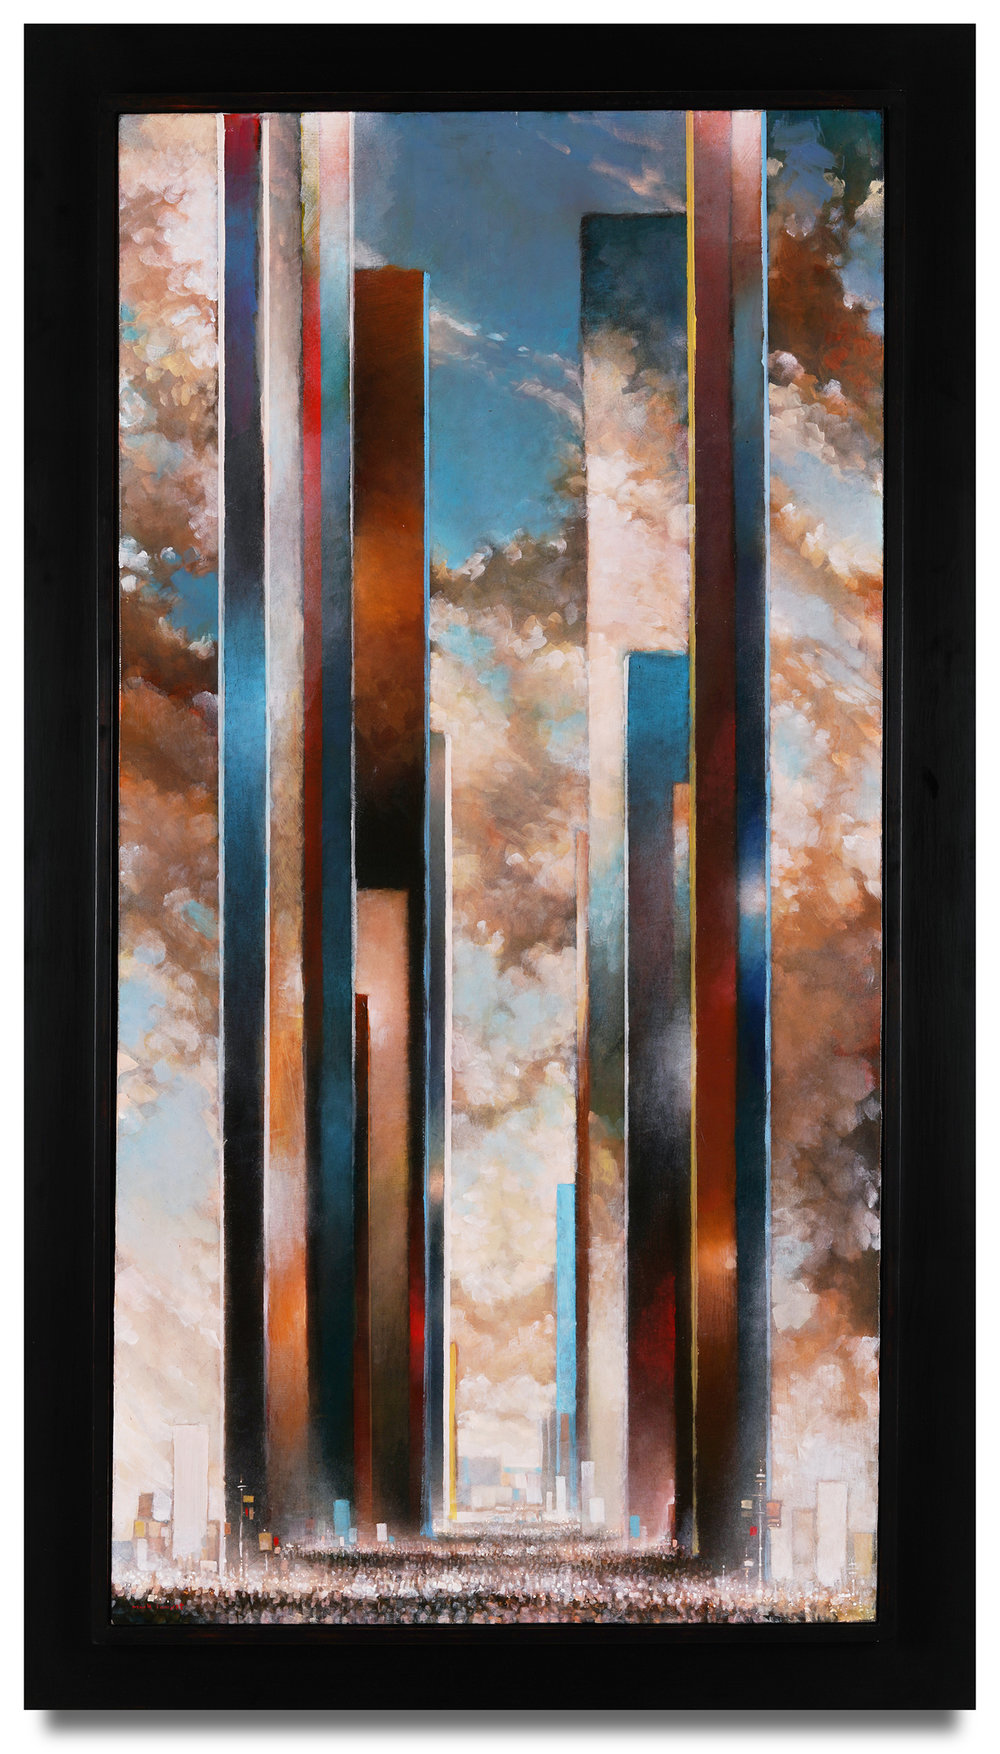 "Mark Innerst, ""Unrest,"" 2018, oil on canvas, 48 x 24 inches; framed 56 1/2 x 30 1/2 inches"